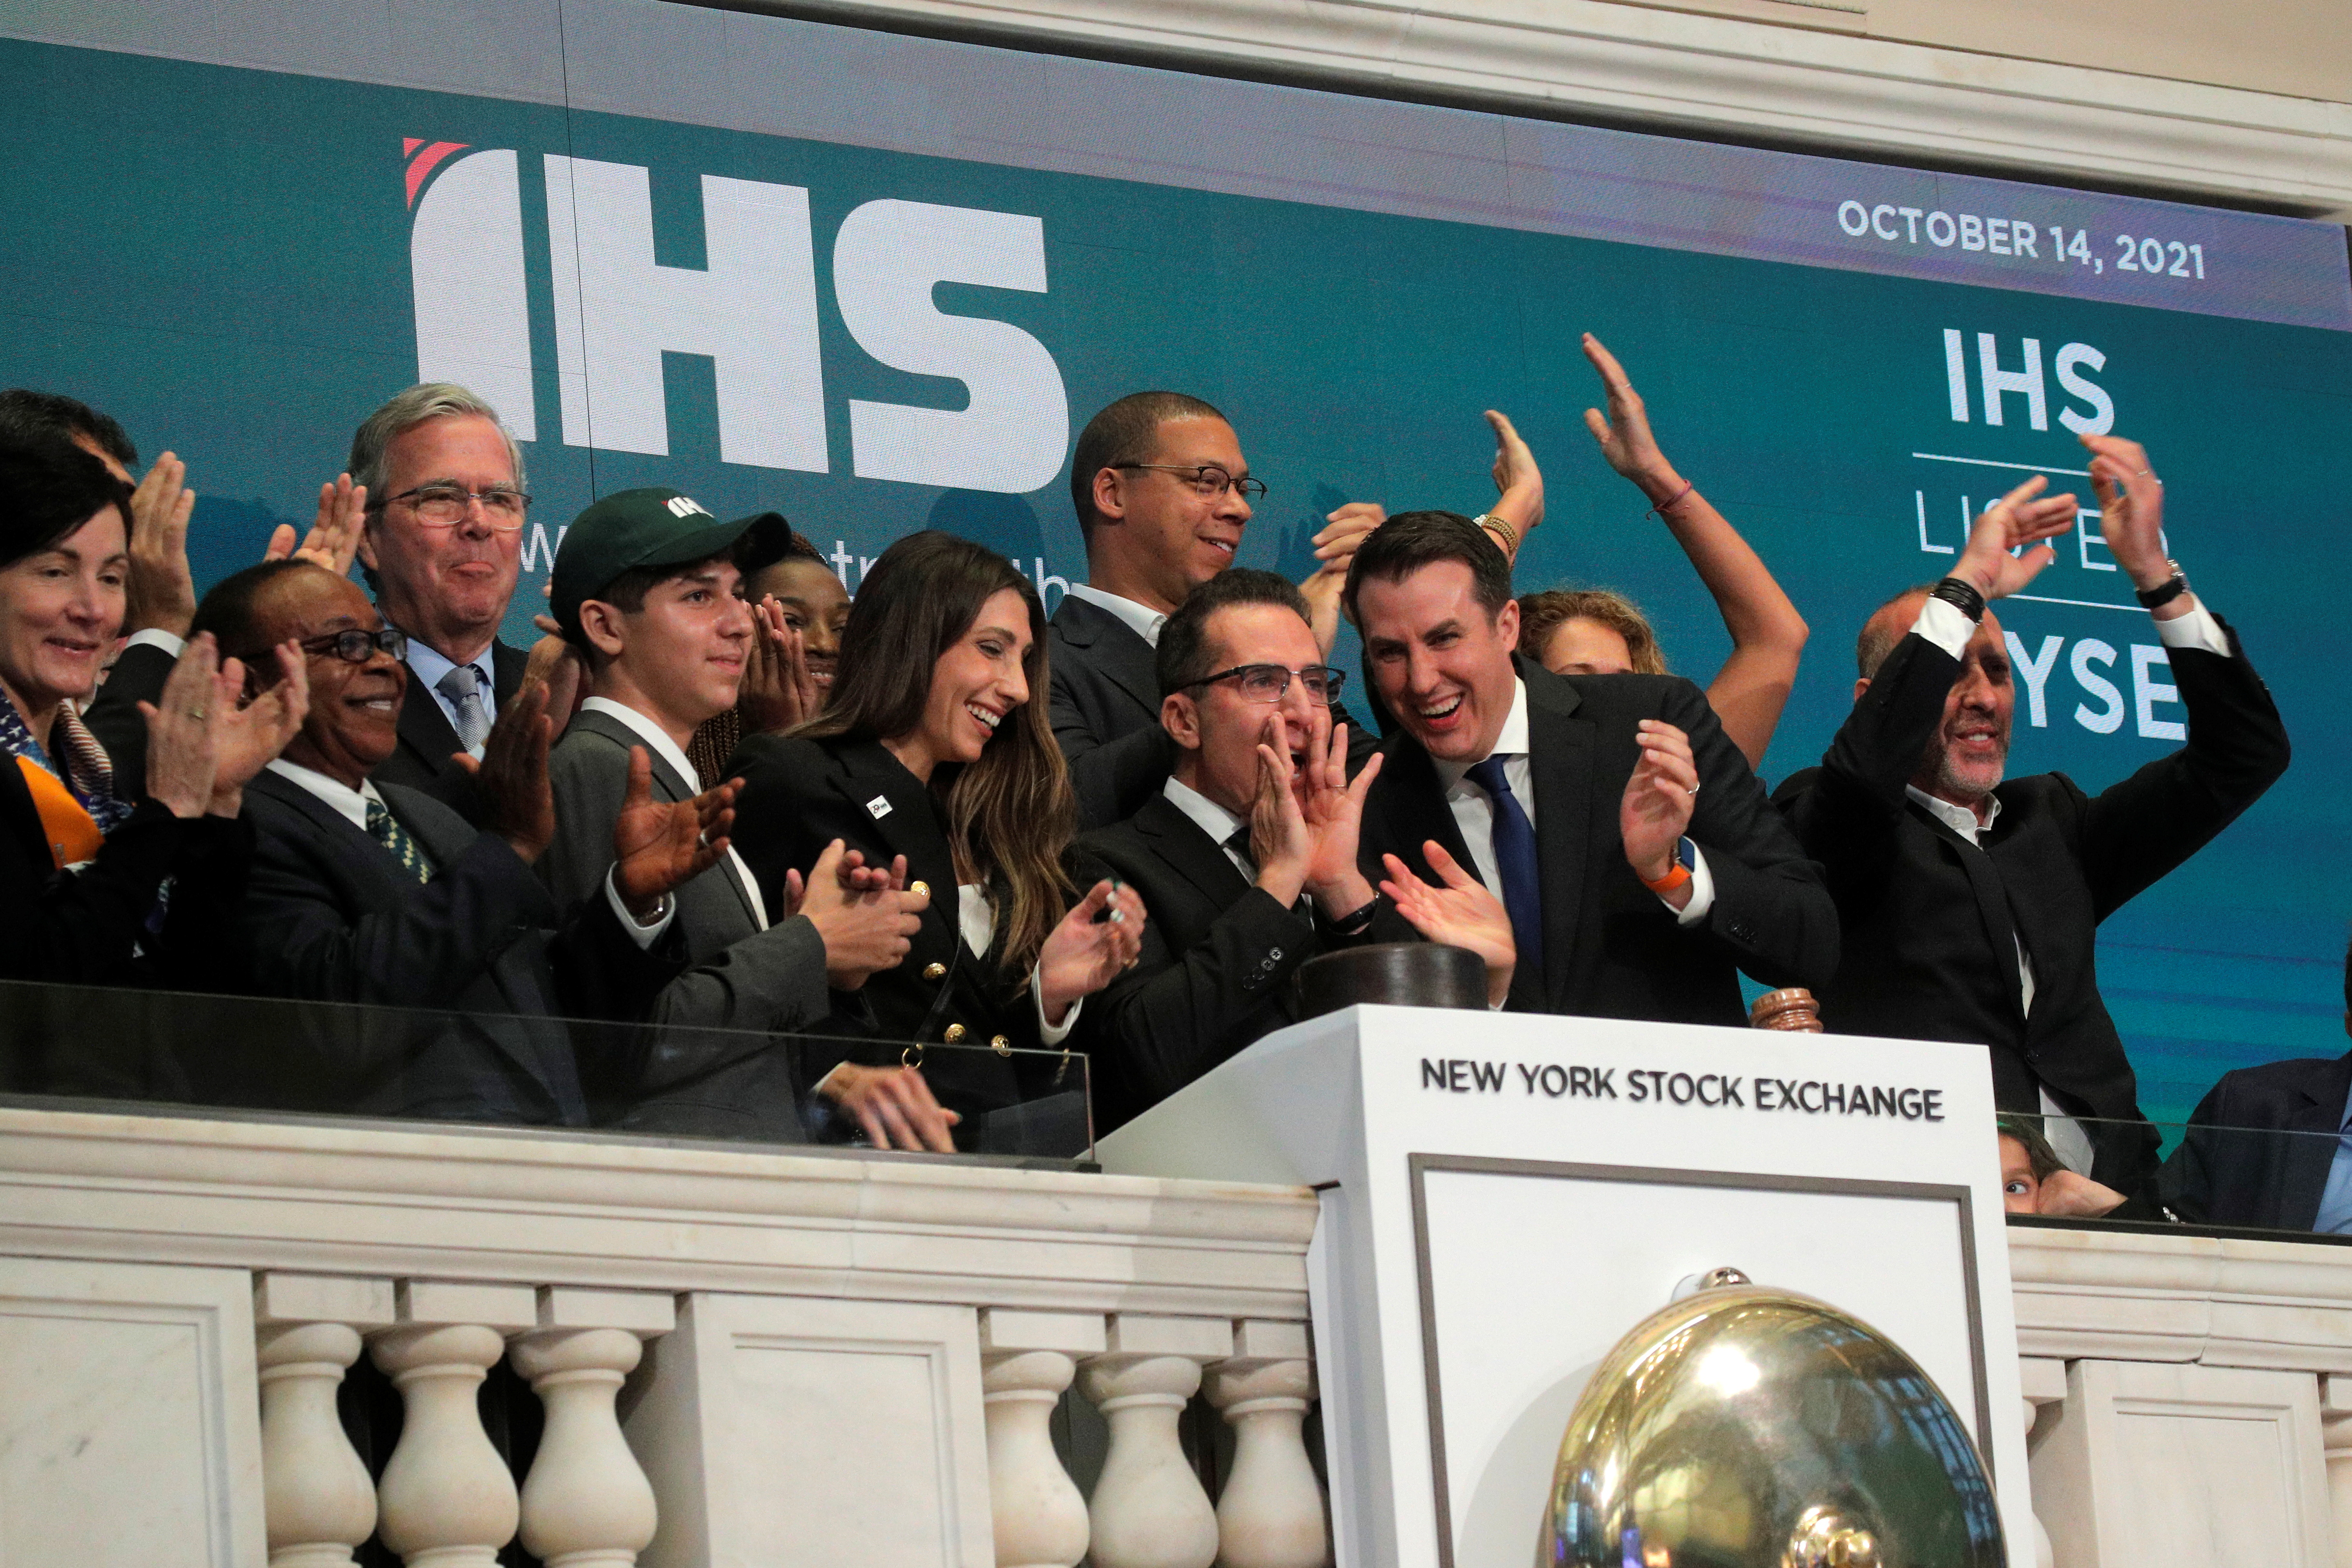 Sam Darwish, Chairman & CEO of IHS Holding Ltd, rings the opening bell to celebrate his company's IPO at the New York Stock Exchange (NYSE) in New York City, U.S., October 14, 2021.  REUTERS/Brendan McDermid